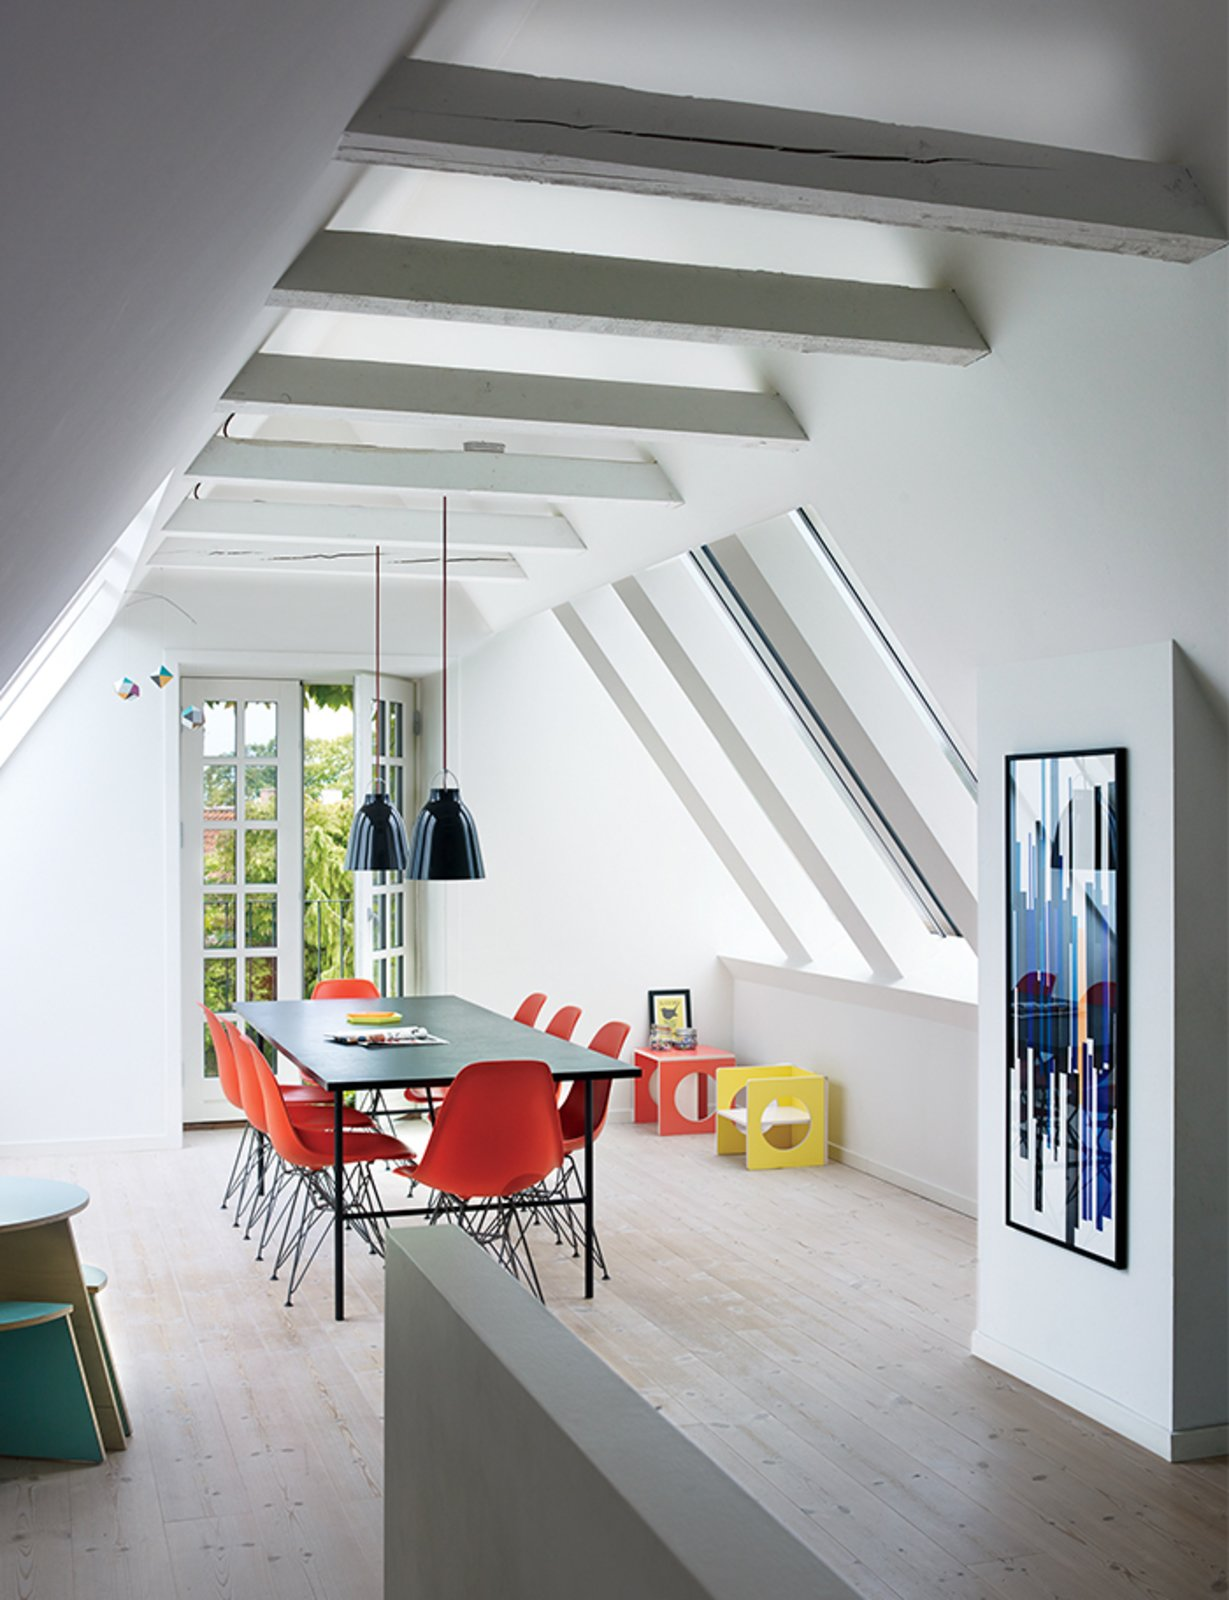 Charrier transformed a cramped attic into a sunny dining room with Vitral windows and white-tinted pine floors by Dinesen. The Sara table is by Hay, the Shell chairs are by Charles and Ray Eames, and the artwork is a hand-printed textile she had framed.  Photo 2 of 11 in 10 Bright and Airy Modern Attic Renovations